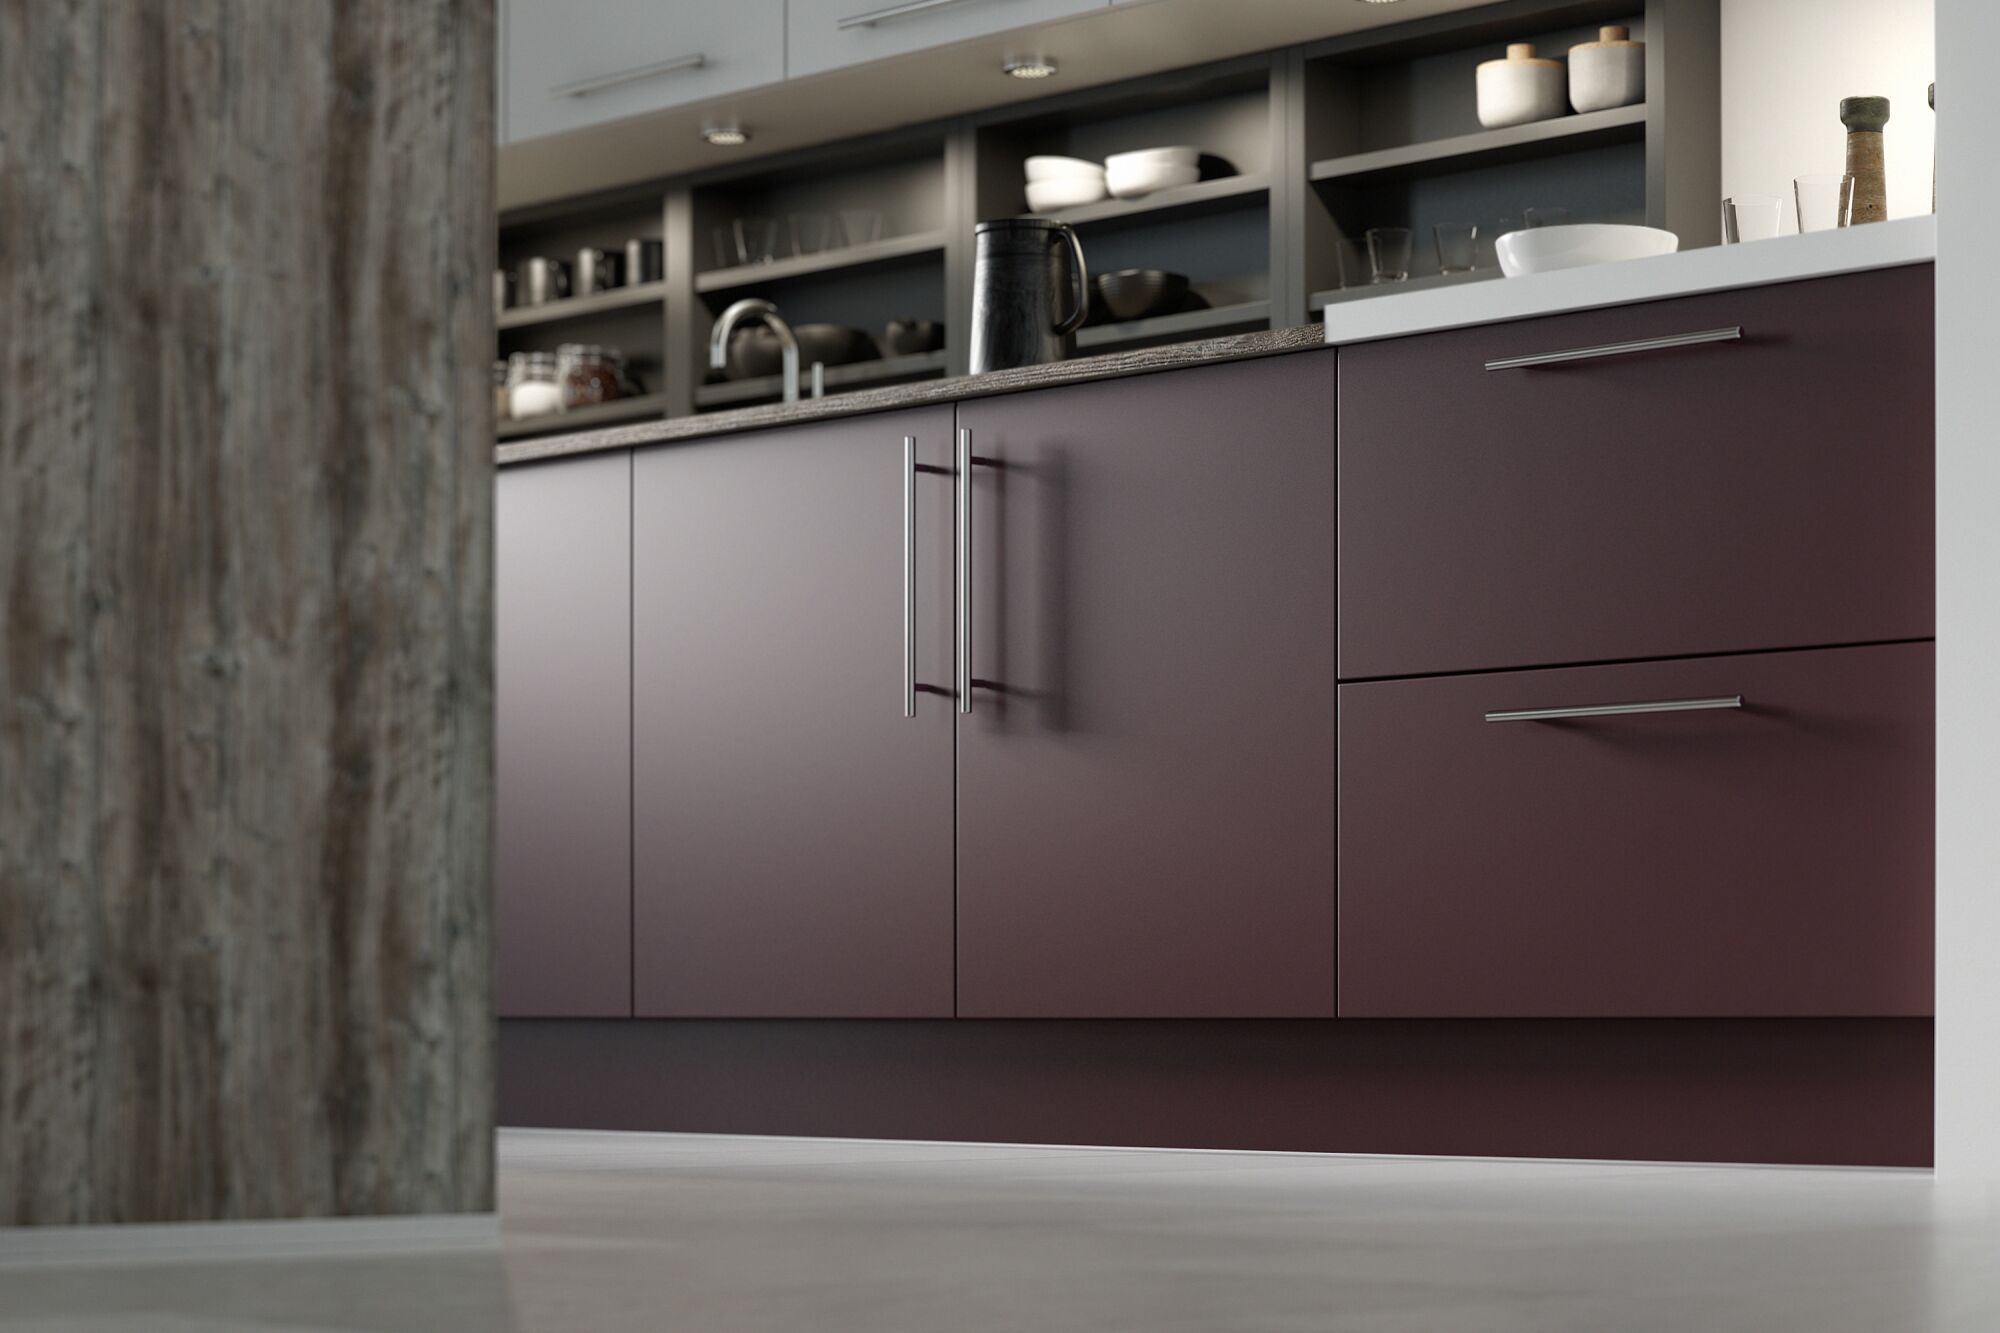 Autograph Elements in Ocean Cypress and Aubergine kitchen